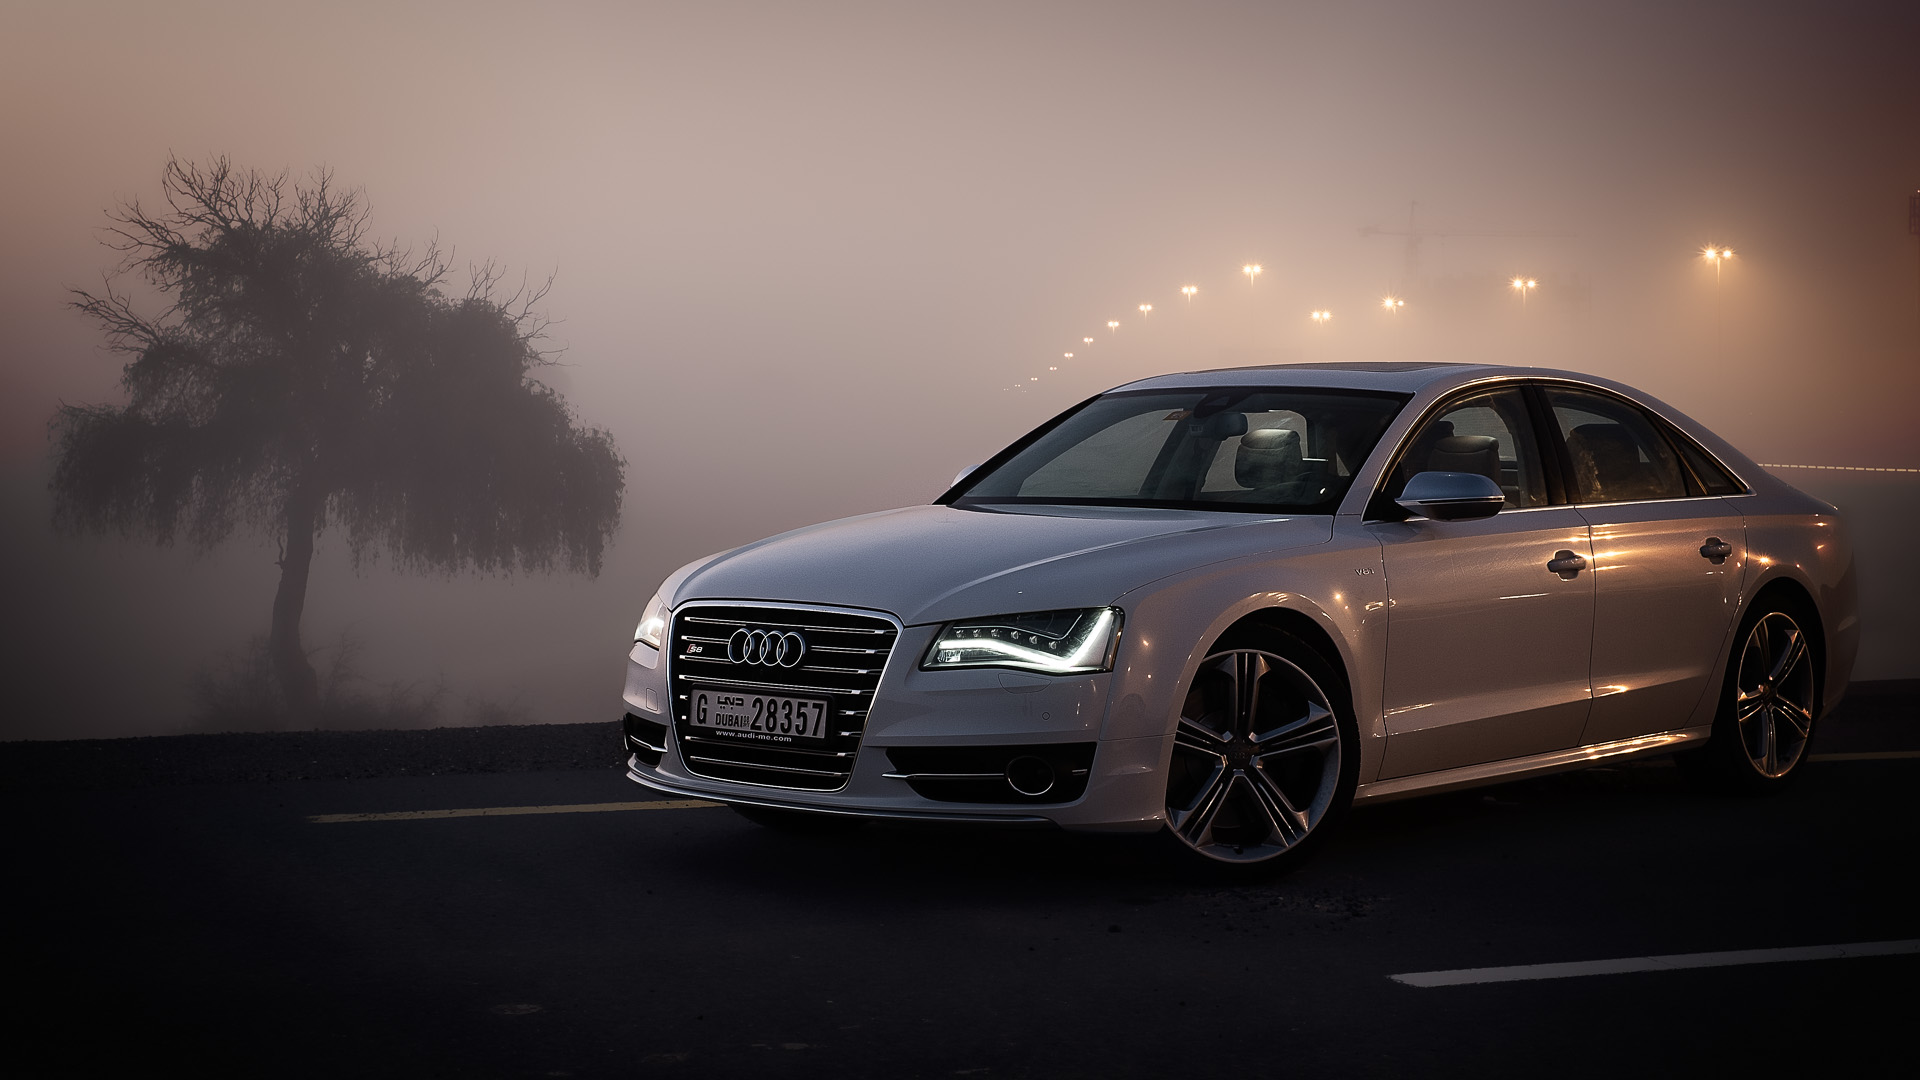 Ultra HD Audi S8 Wallpapers 9SNH9EI   4USkY 1920x1080